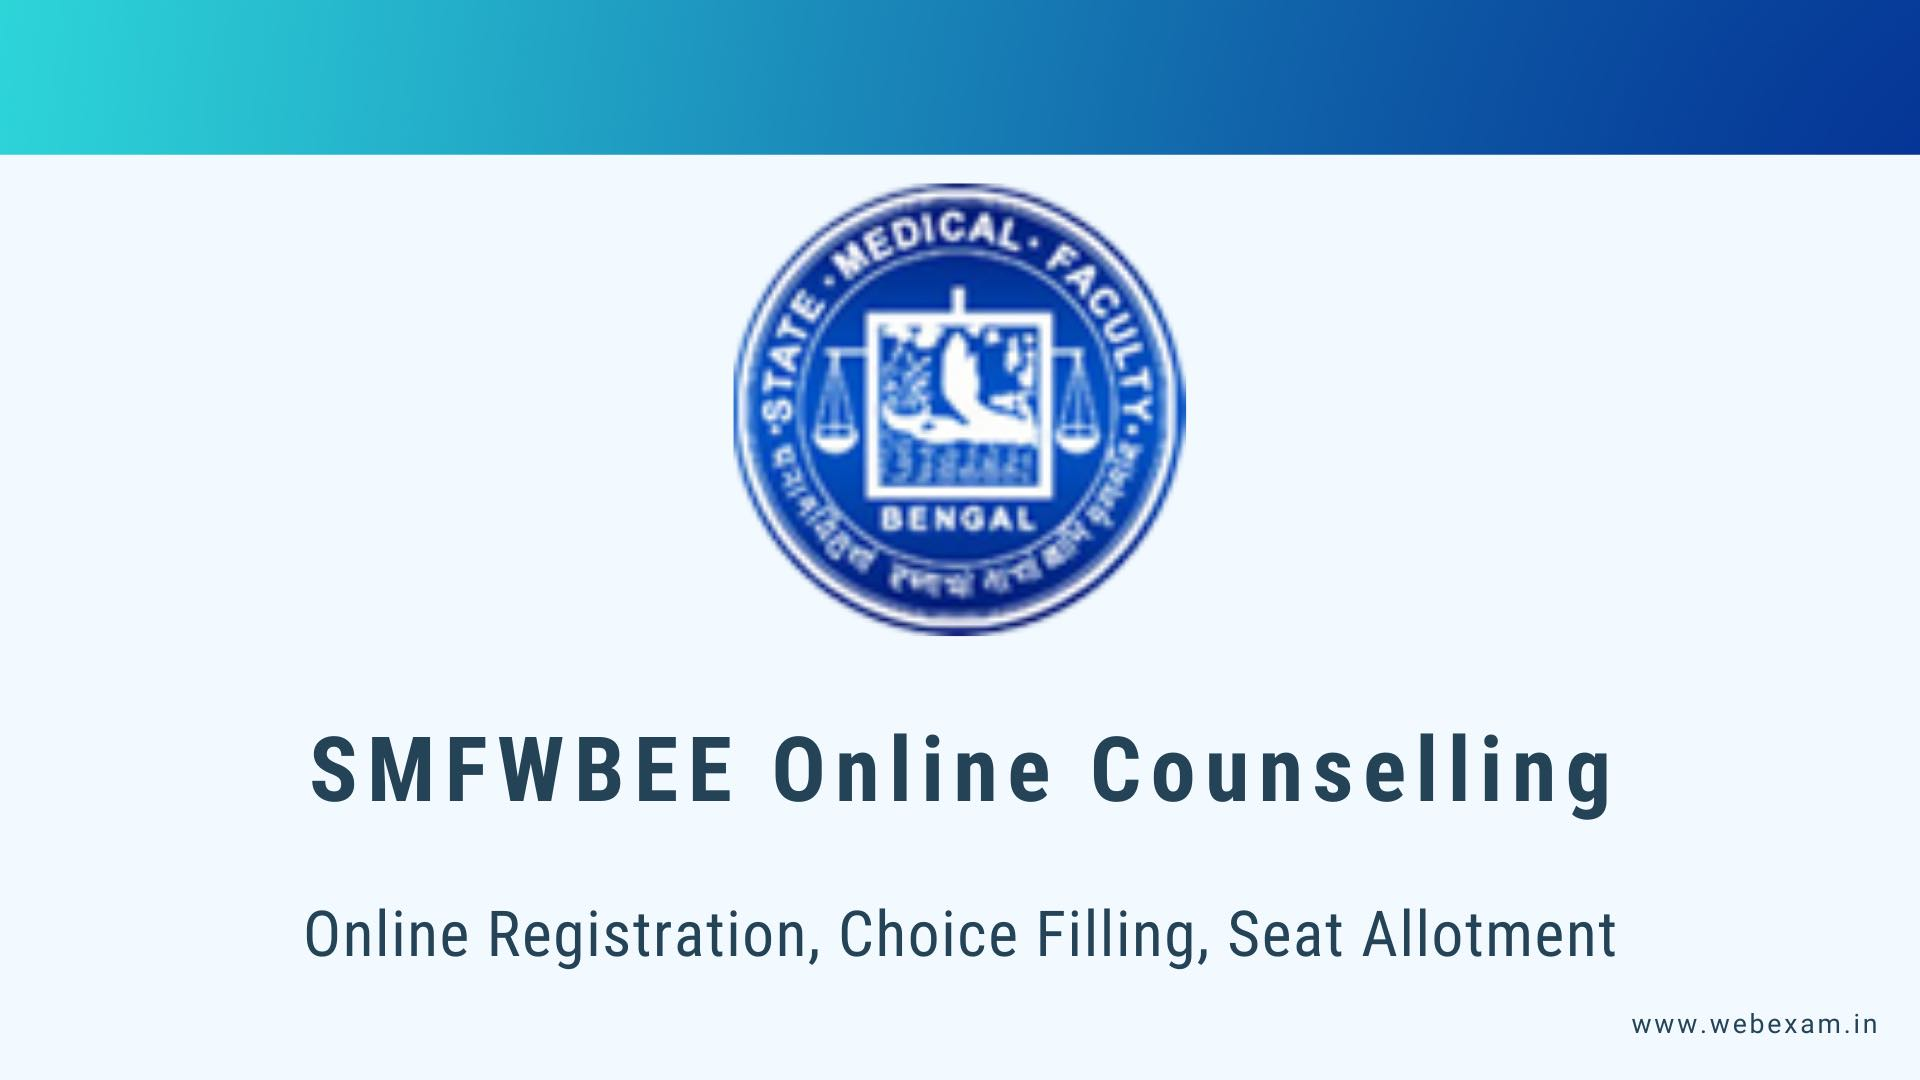 SMFWBEE Online Counselling 2020